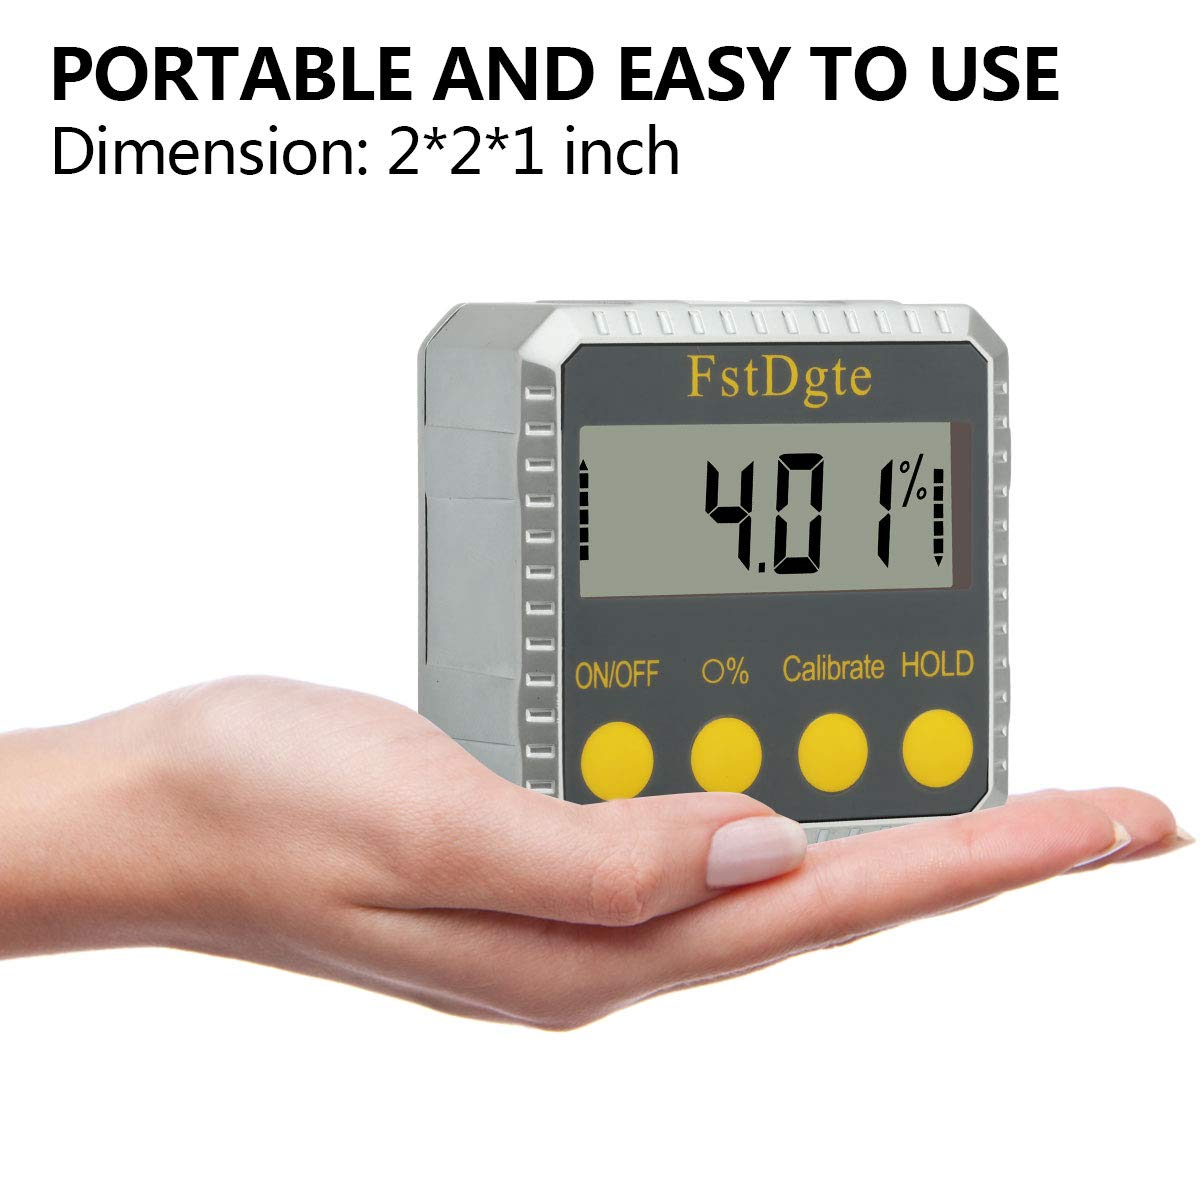 Digital Protractor Angle Gauge Finder Level Bevel,Zinc Alloy Magnetic Base Data Hold,Absolute//Relative,Degree//Slope /% Conversion,for Miter Saw,Woodworking,Repair Industry etc,Lifetime Warranty